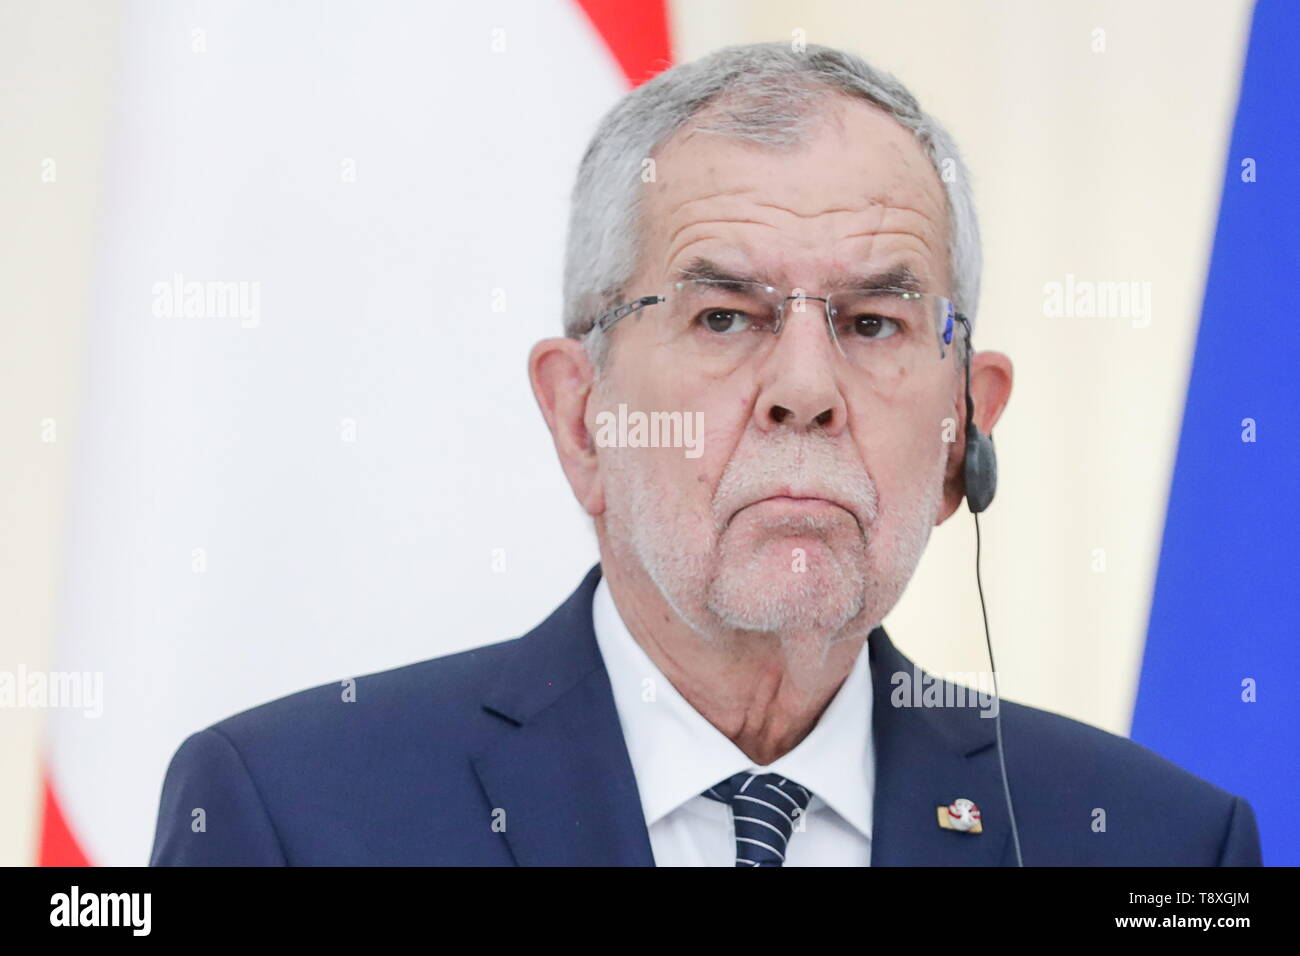 Sochi, Russia. 15th May, 2019. SOCHI, RUSSIA - MAY 15, 2019: Austria's President Alexander Van der Bellen gives a press conference folowing his meeting with Russia's President Vladimir Putin at the Rus health resort. Mikhail Metzel/TASS Credit: ITAR-TASS News Agency/Alamy Live News - Stock Image